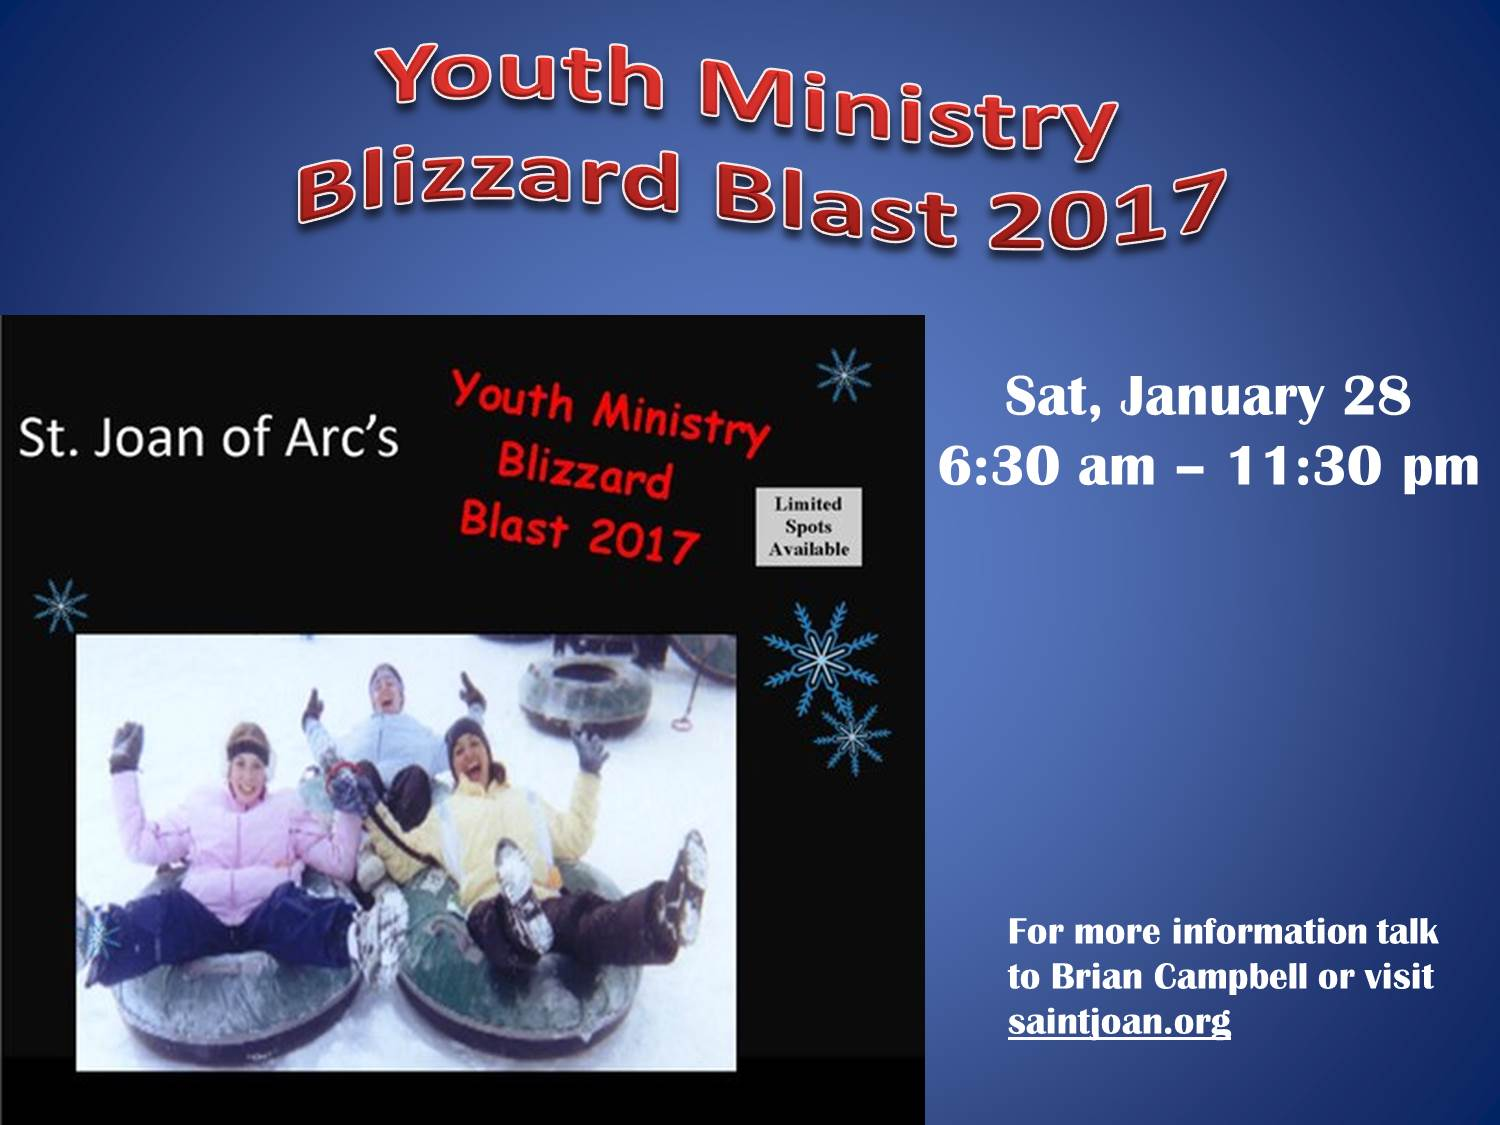 The Annual Youth Blizzard Blast is just around the corner - Saturday, January 28.